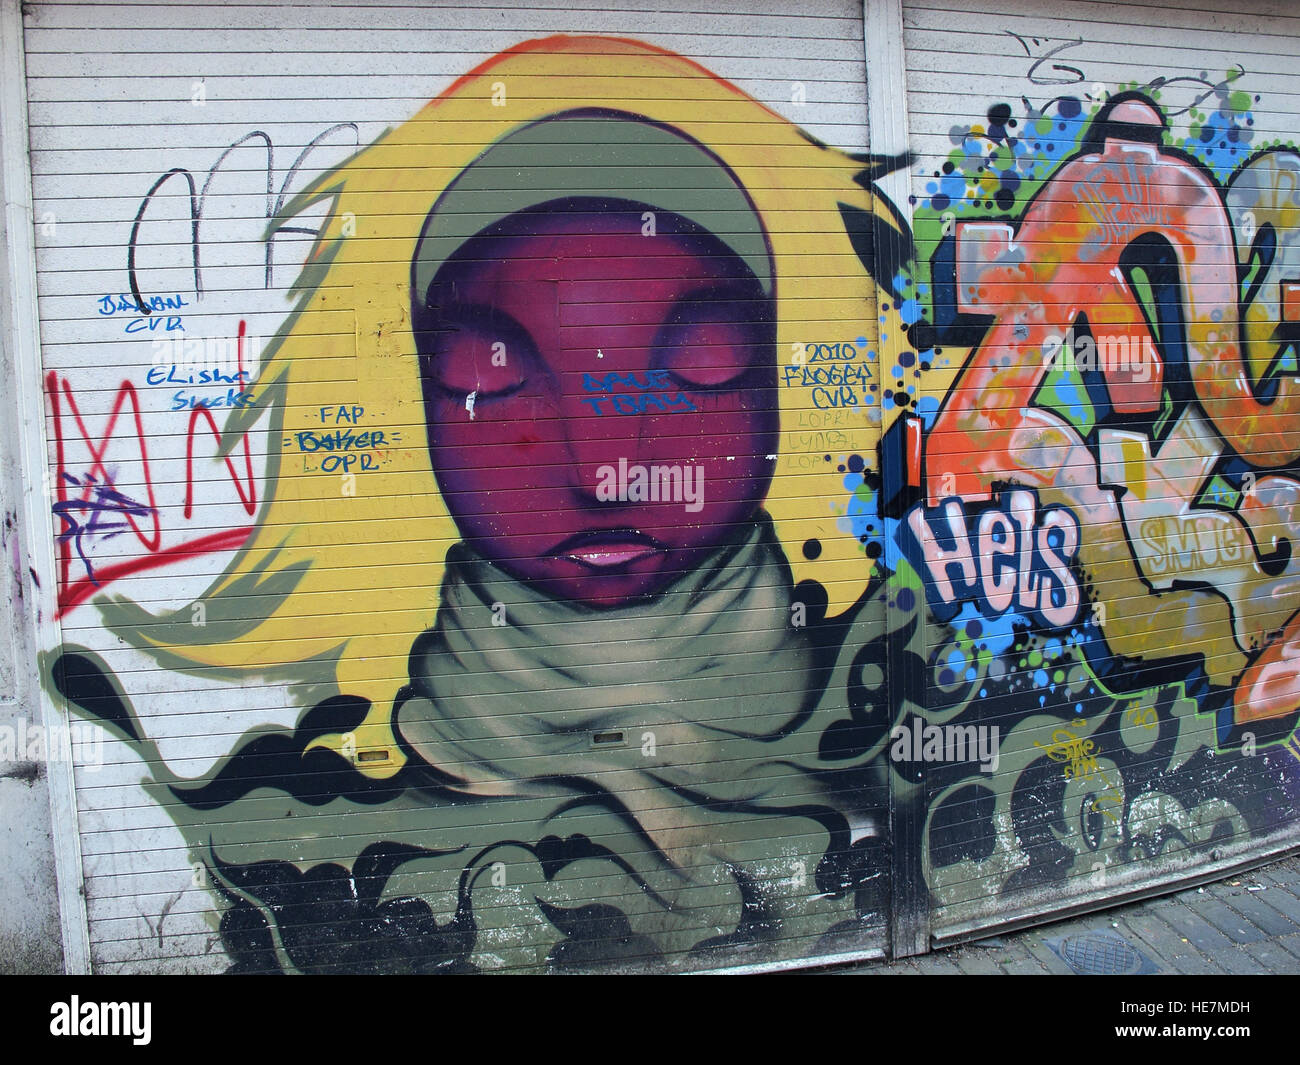 Belfast Garfield St Graffiti City Centre, Northern Ireland, UK - Stock Image